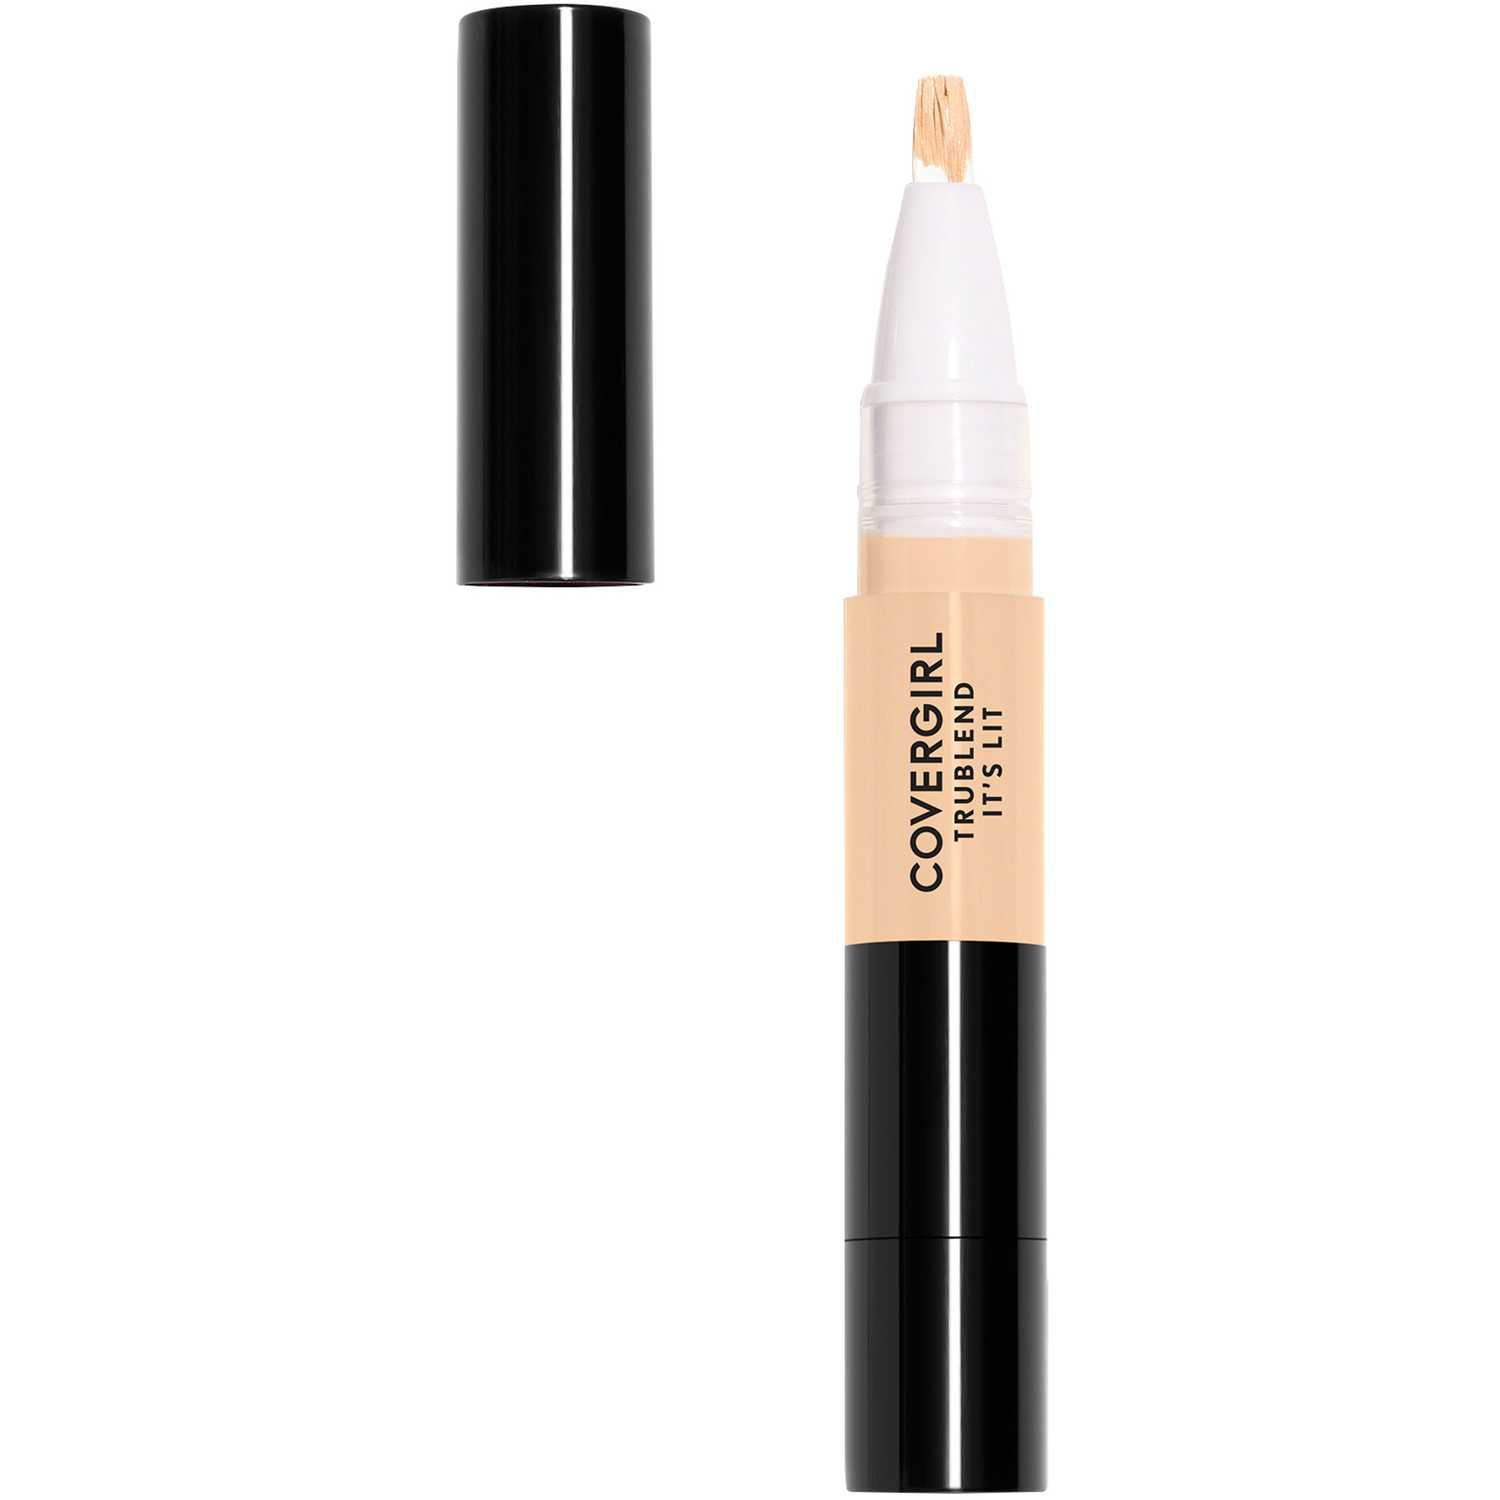 Covergirl Corrector Trublend It'S Lit Concealer Light Correctores